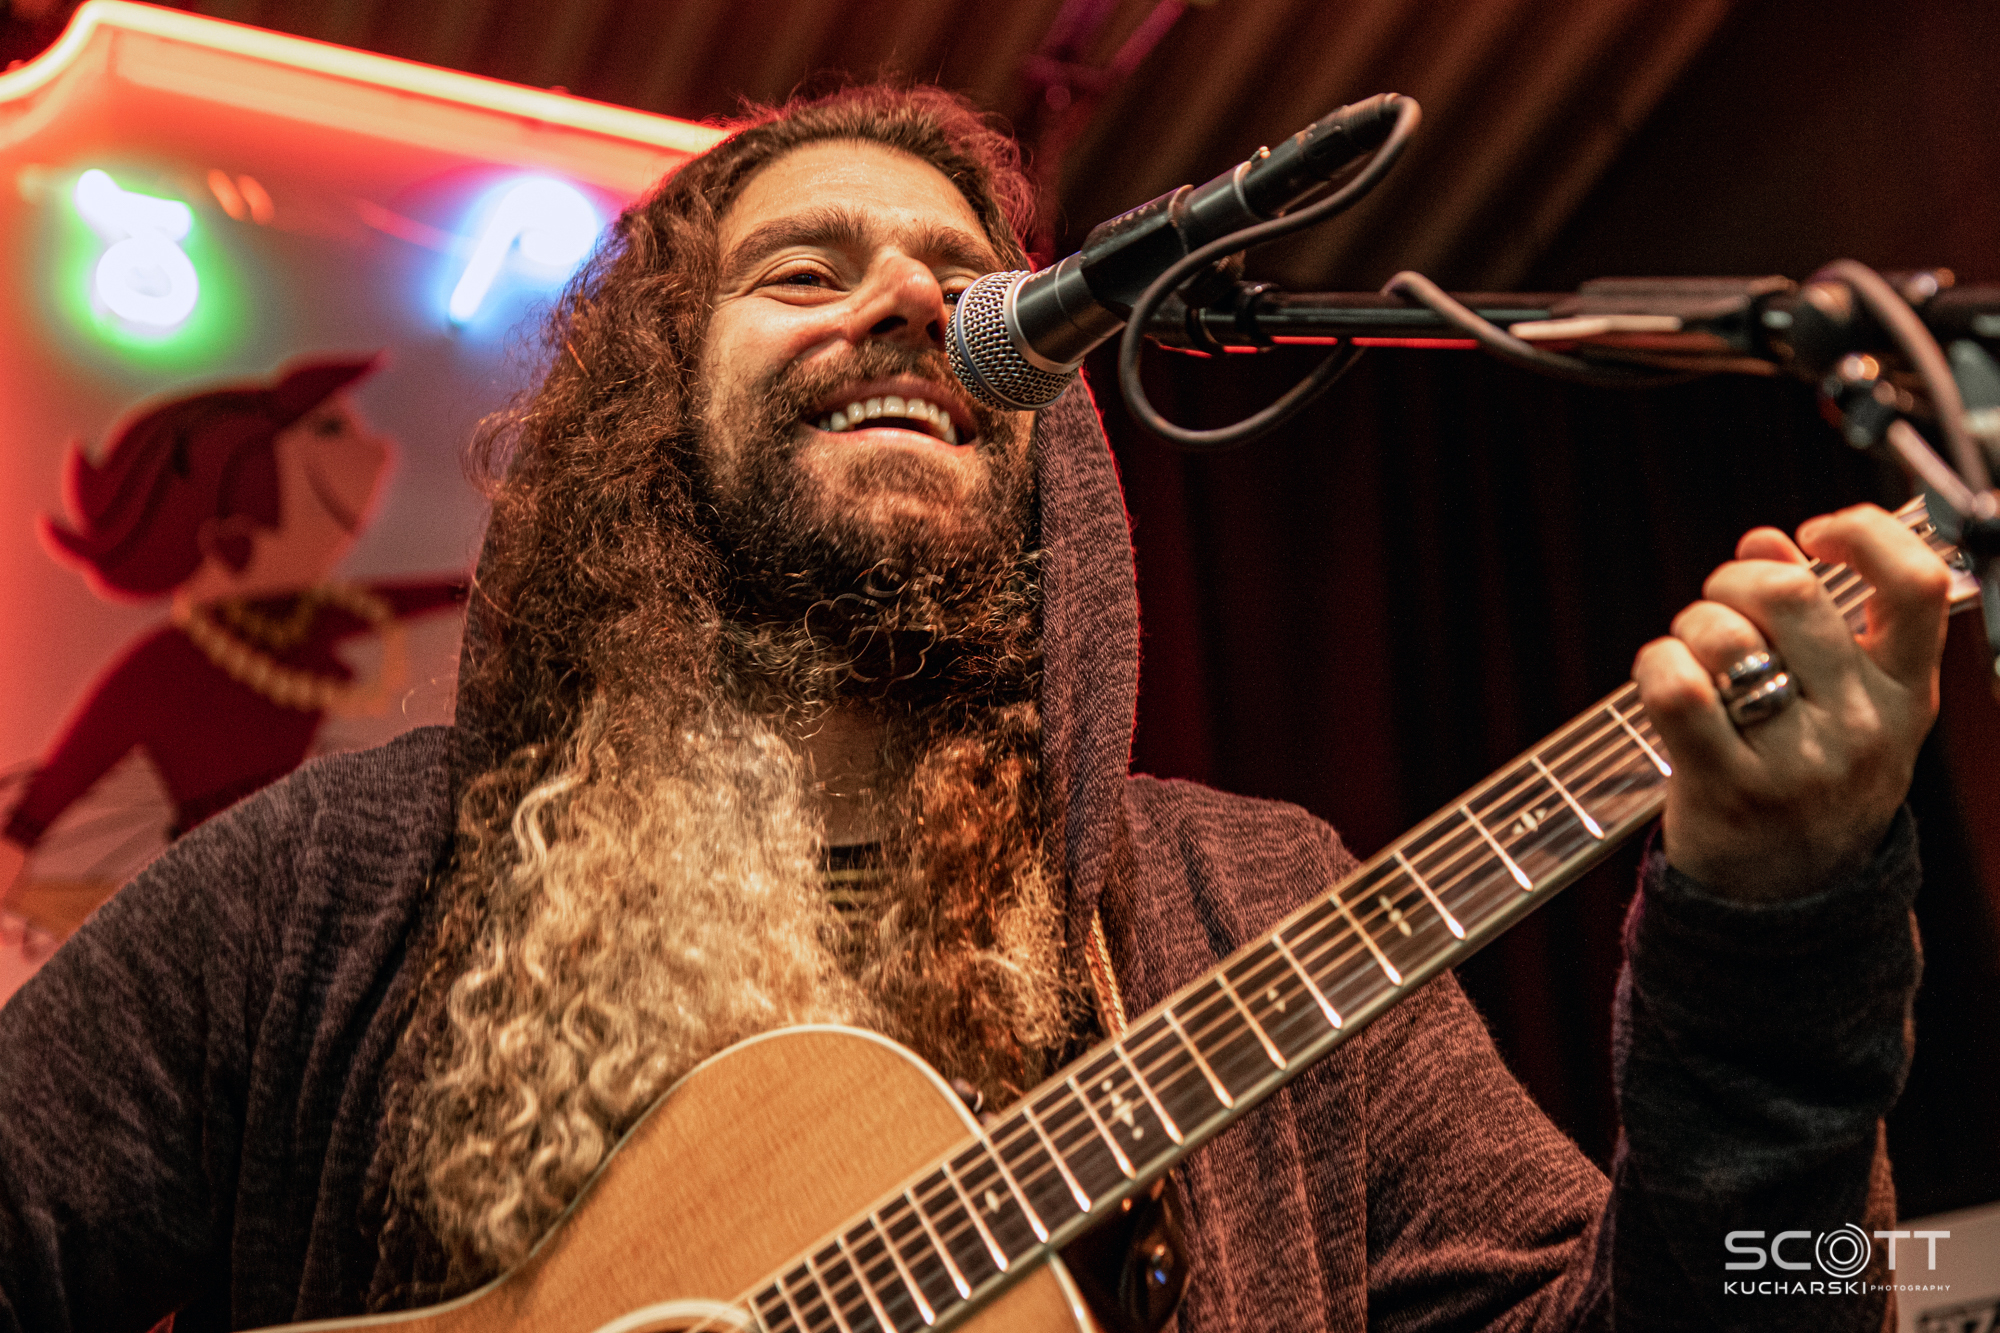 PHOTOS/VIDEO: Coheed And Cambria Acoustic At Gallery Of